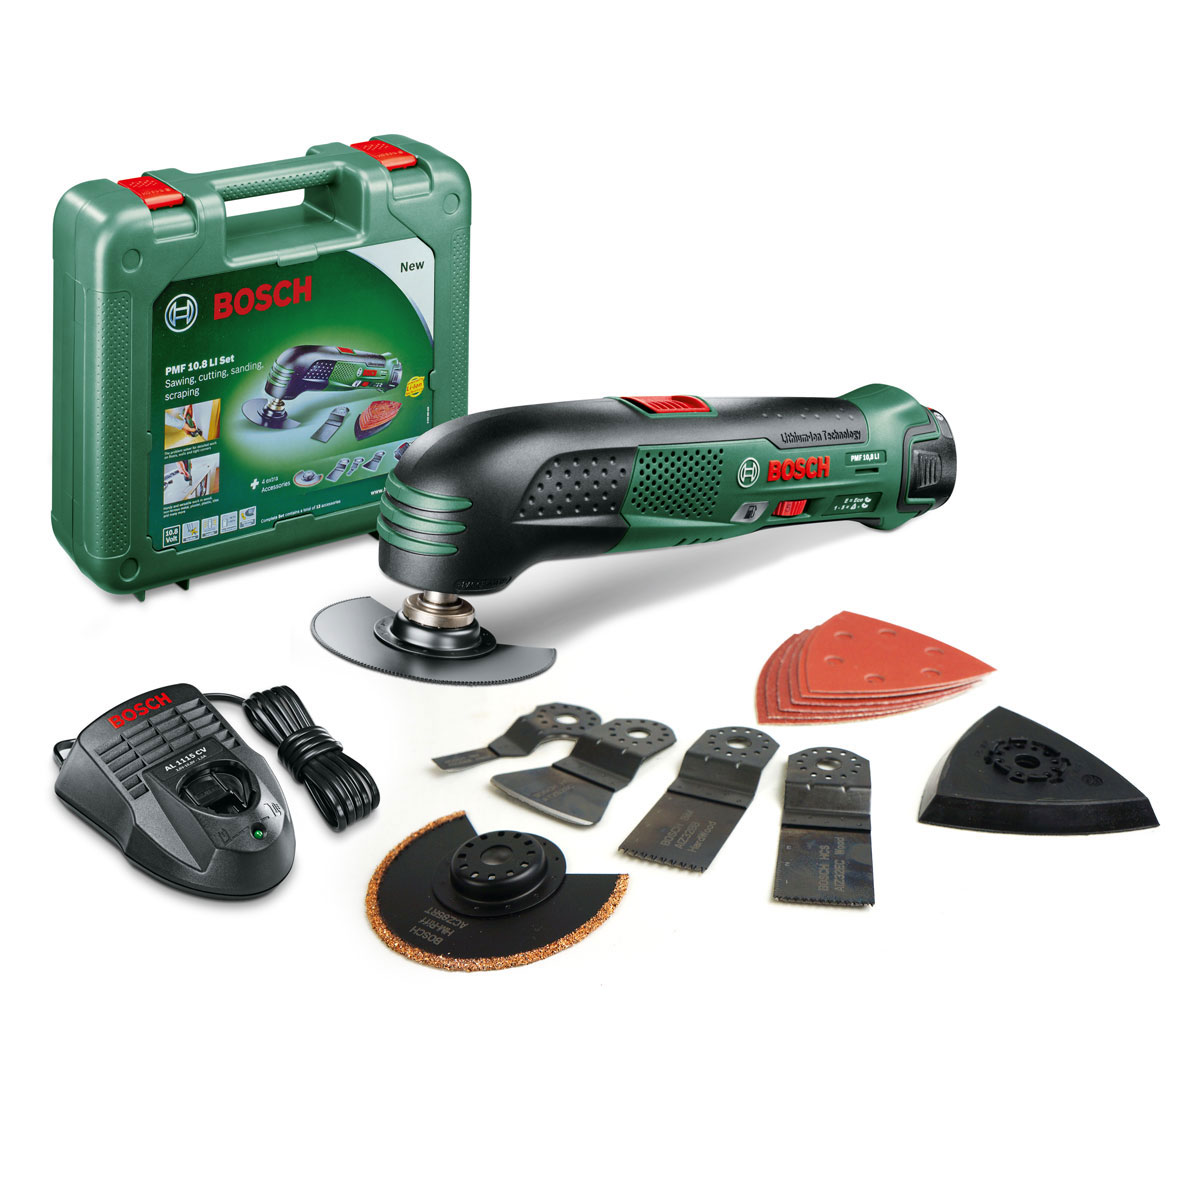 catproduct : bosch pmf 10.8v - package 2